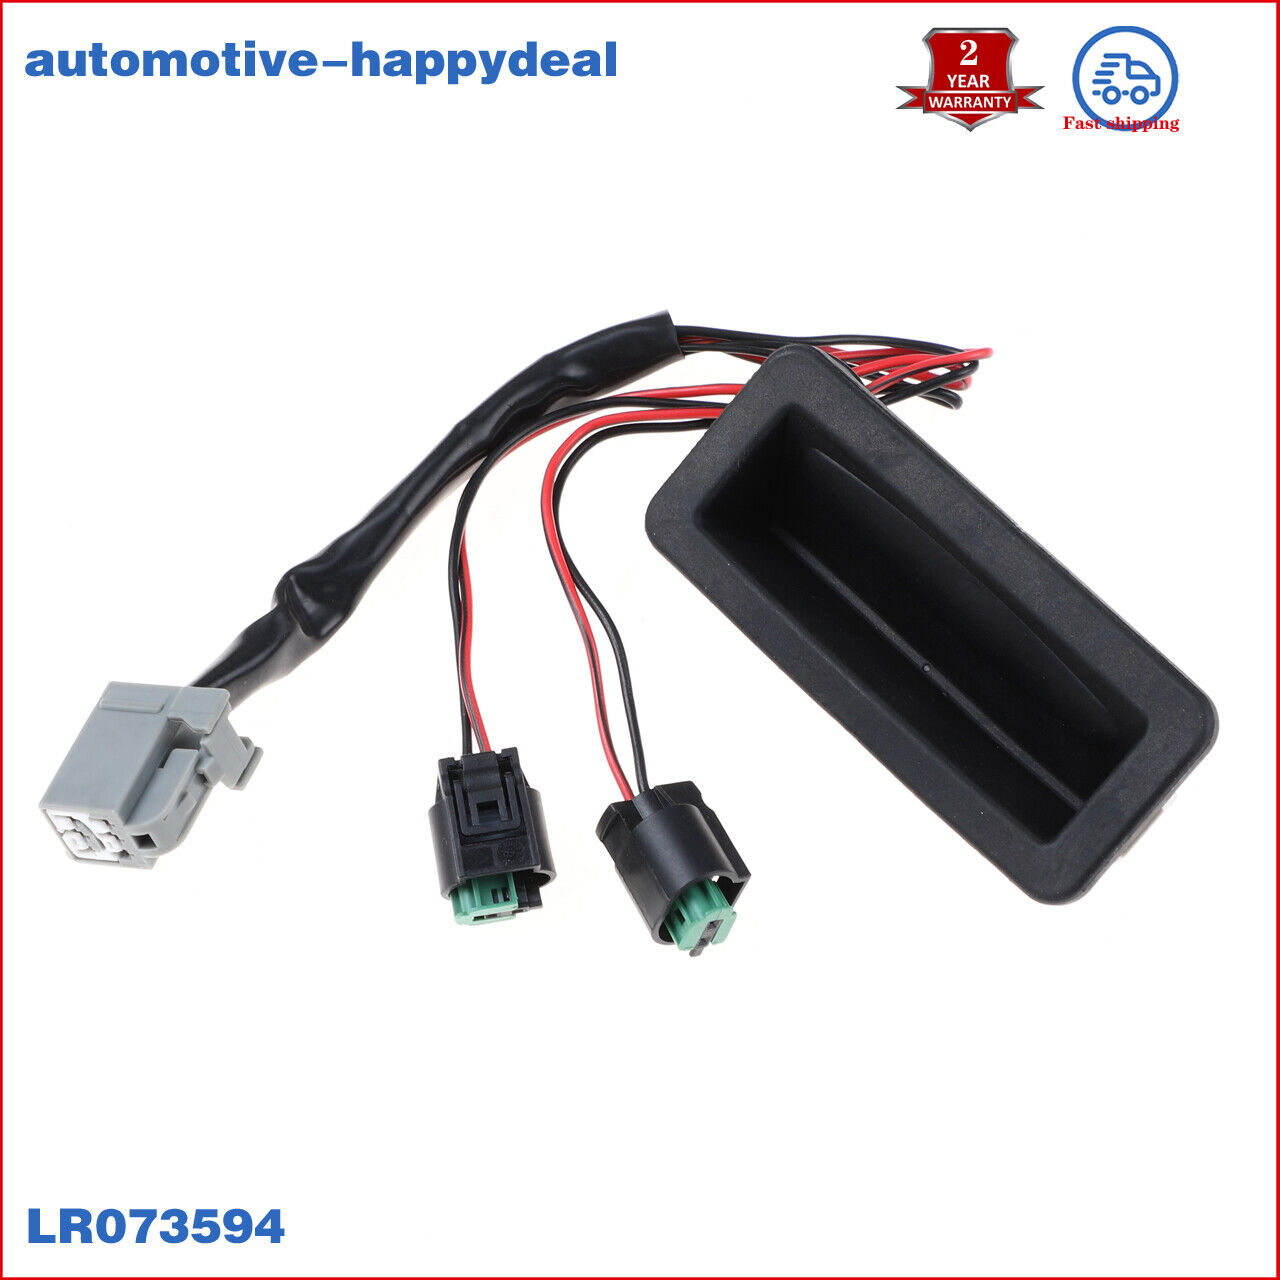 Rear Tailgate Door Release Handle Switch For Land Lover Discovery CXB000456PVJ